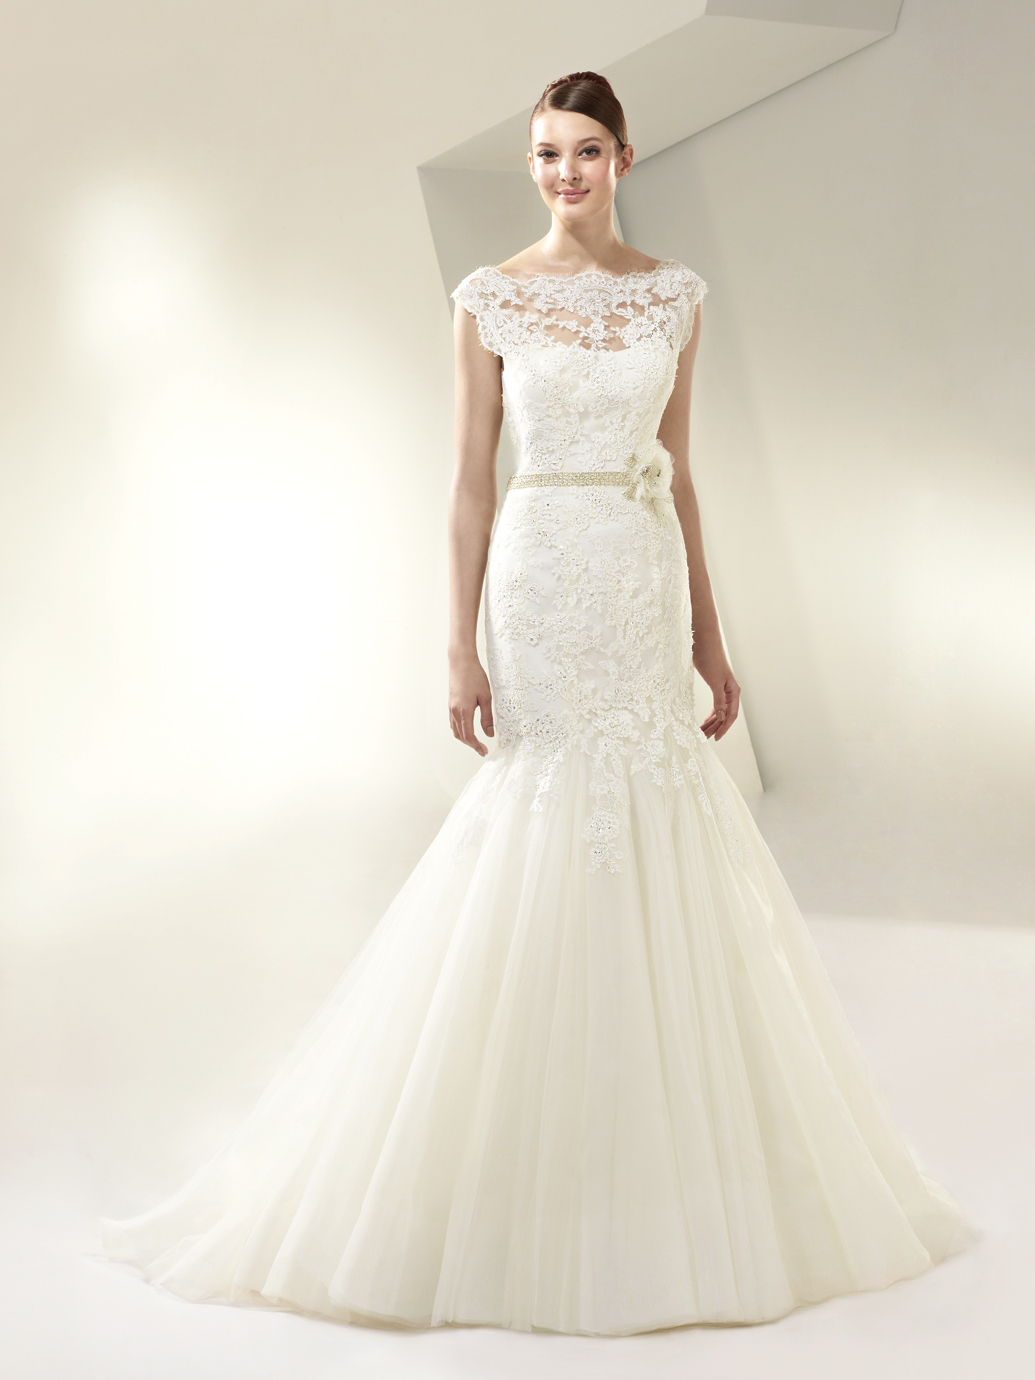 The Best Gowns From The Most In Demand Wedding Dress Designers Part 4